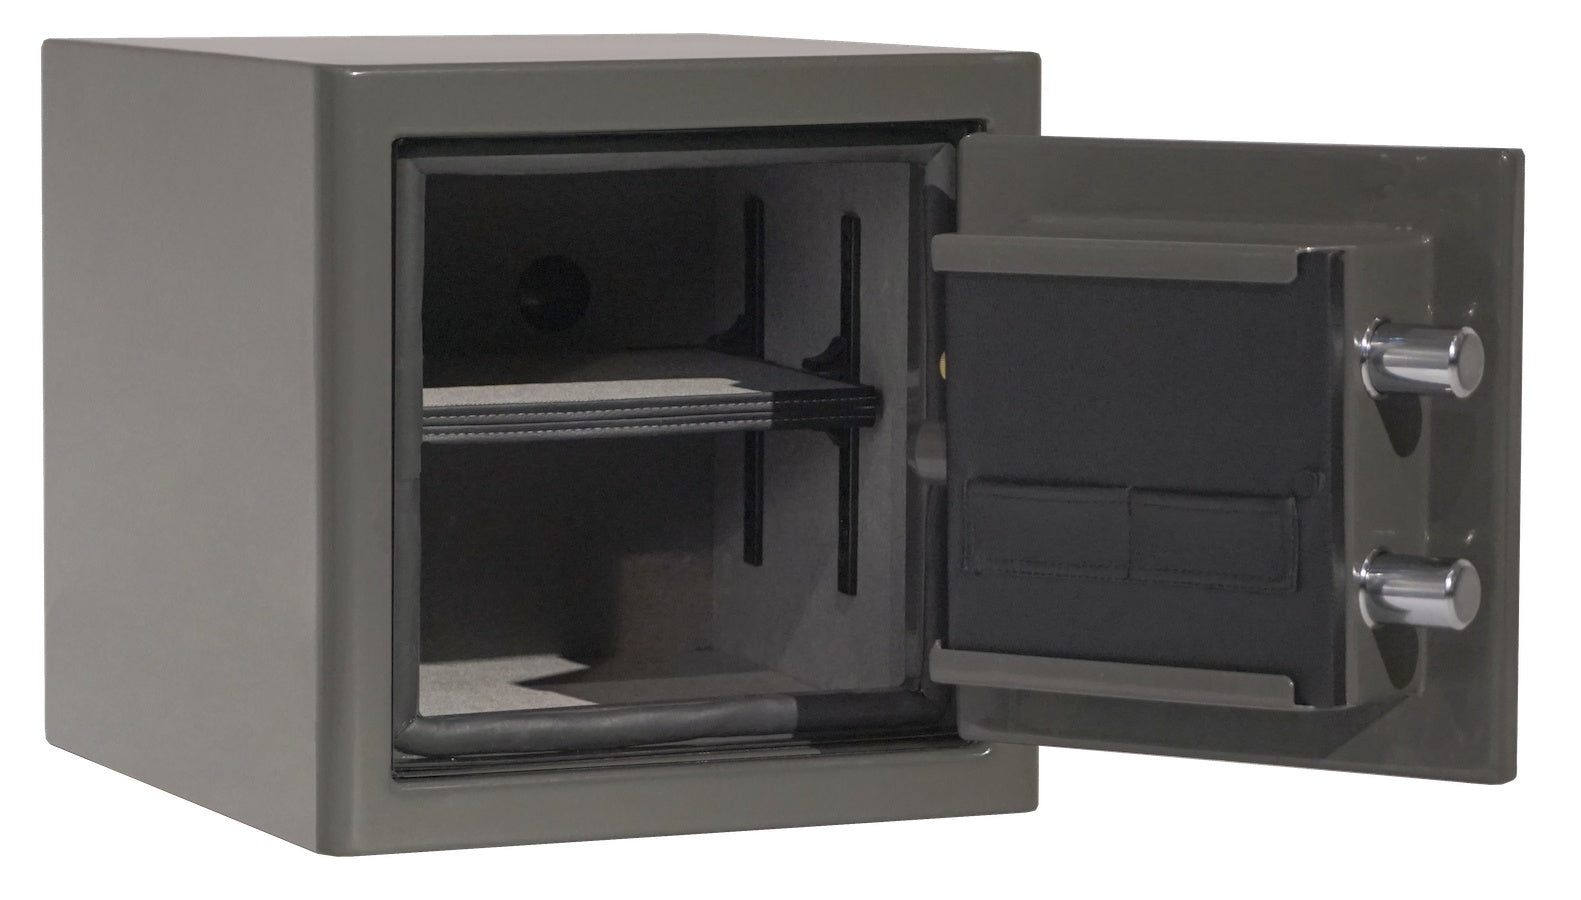 Fireproof Safes & Waterproof Chests - Sports Afield SA-H2 Sanctuary Platinum Series Home & Office Safe